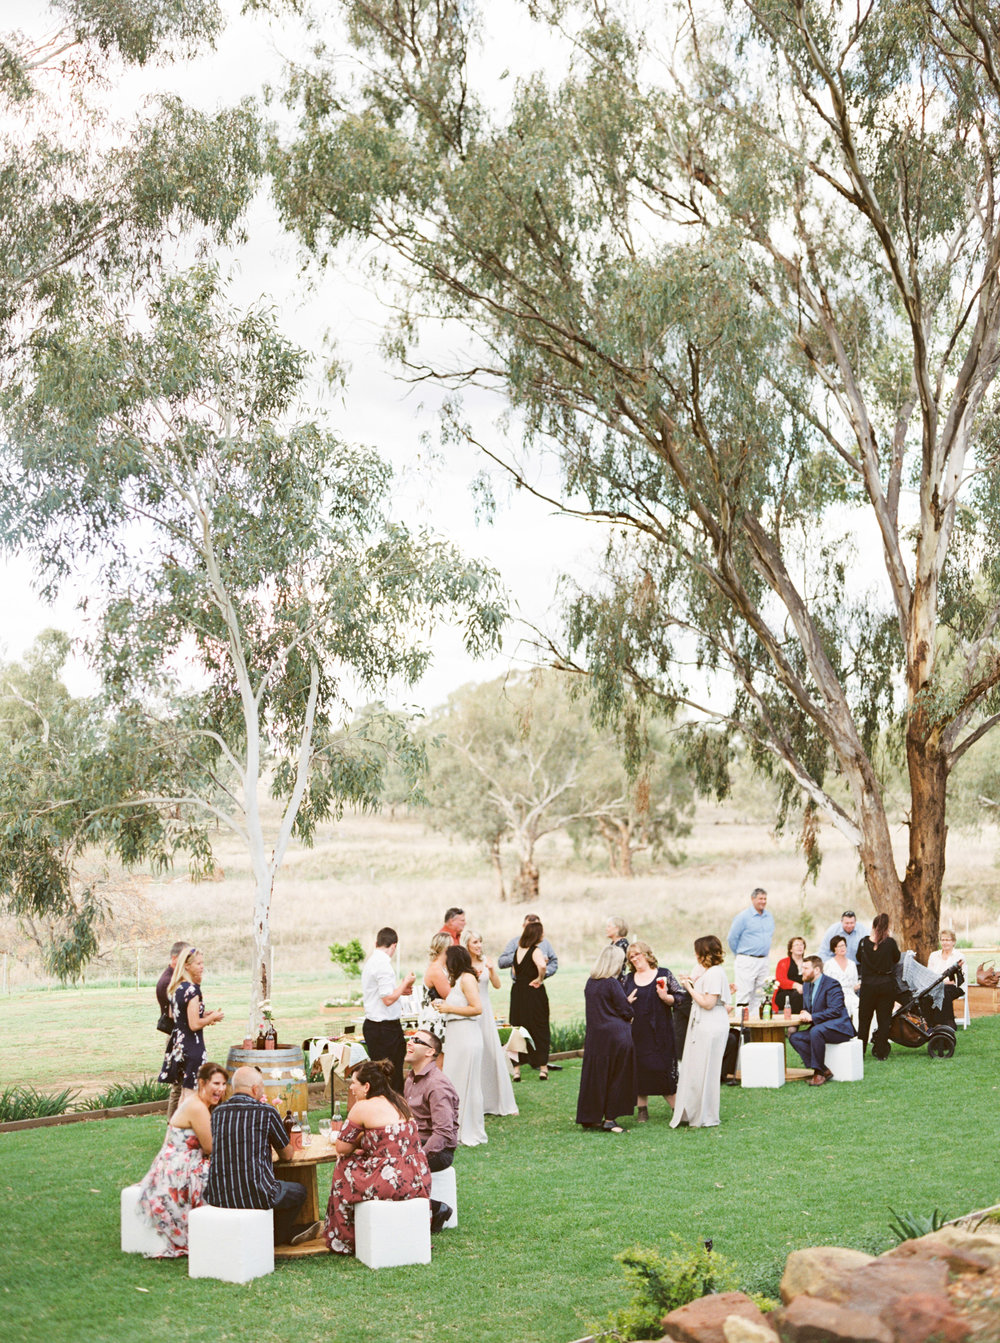 00044- Fine Art Film Dubbo NSW Wedding Photographer Sheri McMahon.jpg